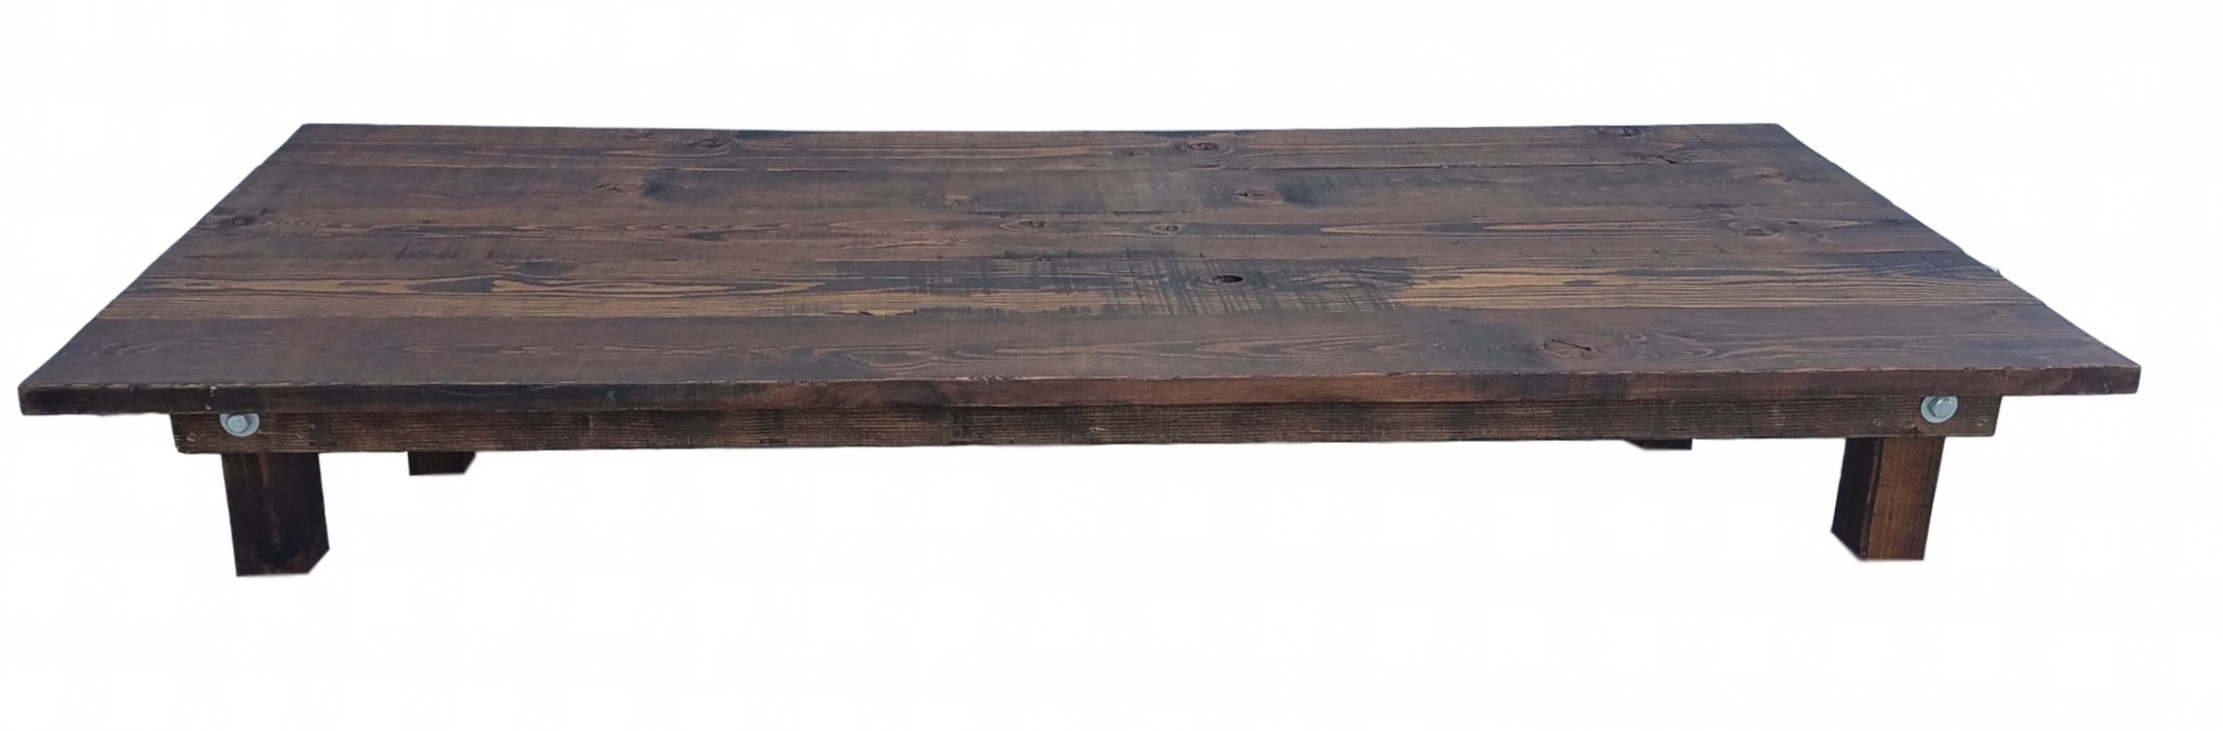 Farm Table - floor level.jpg